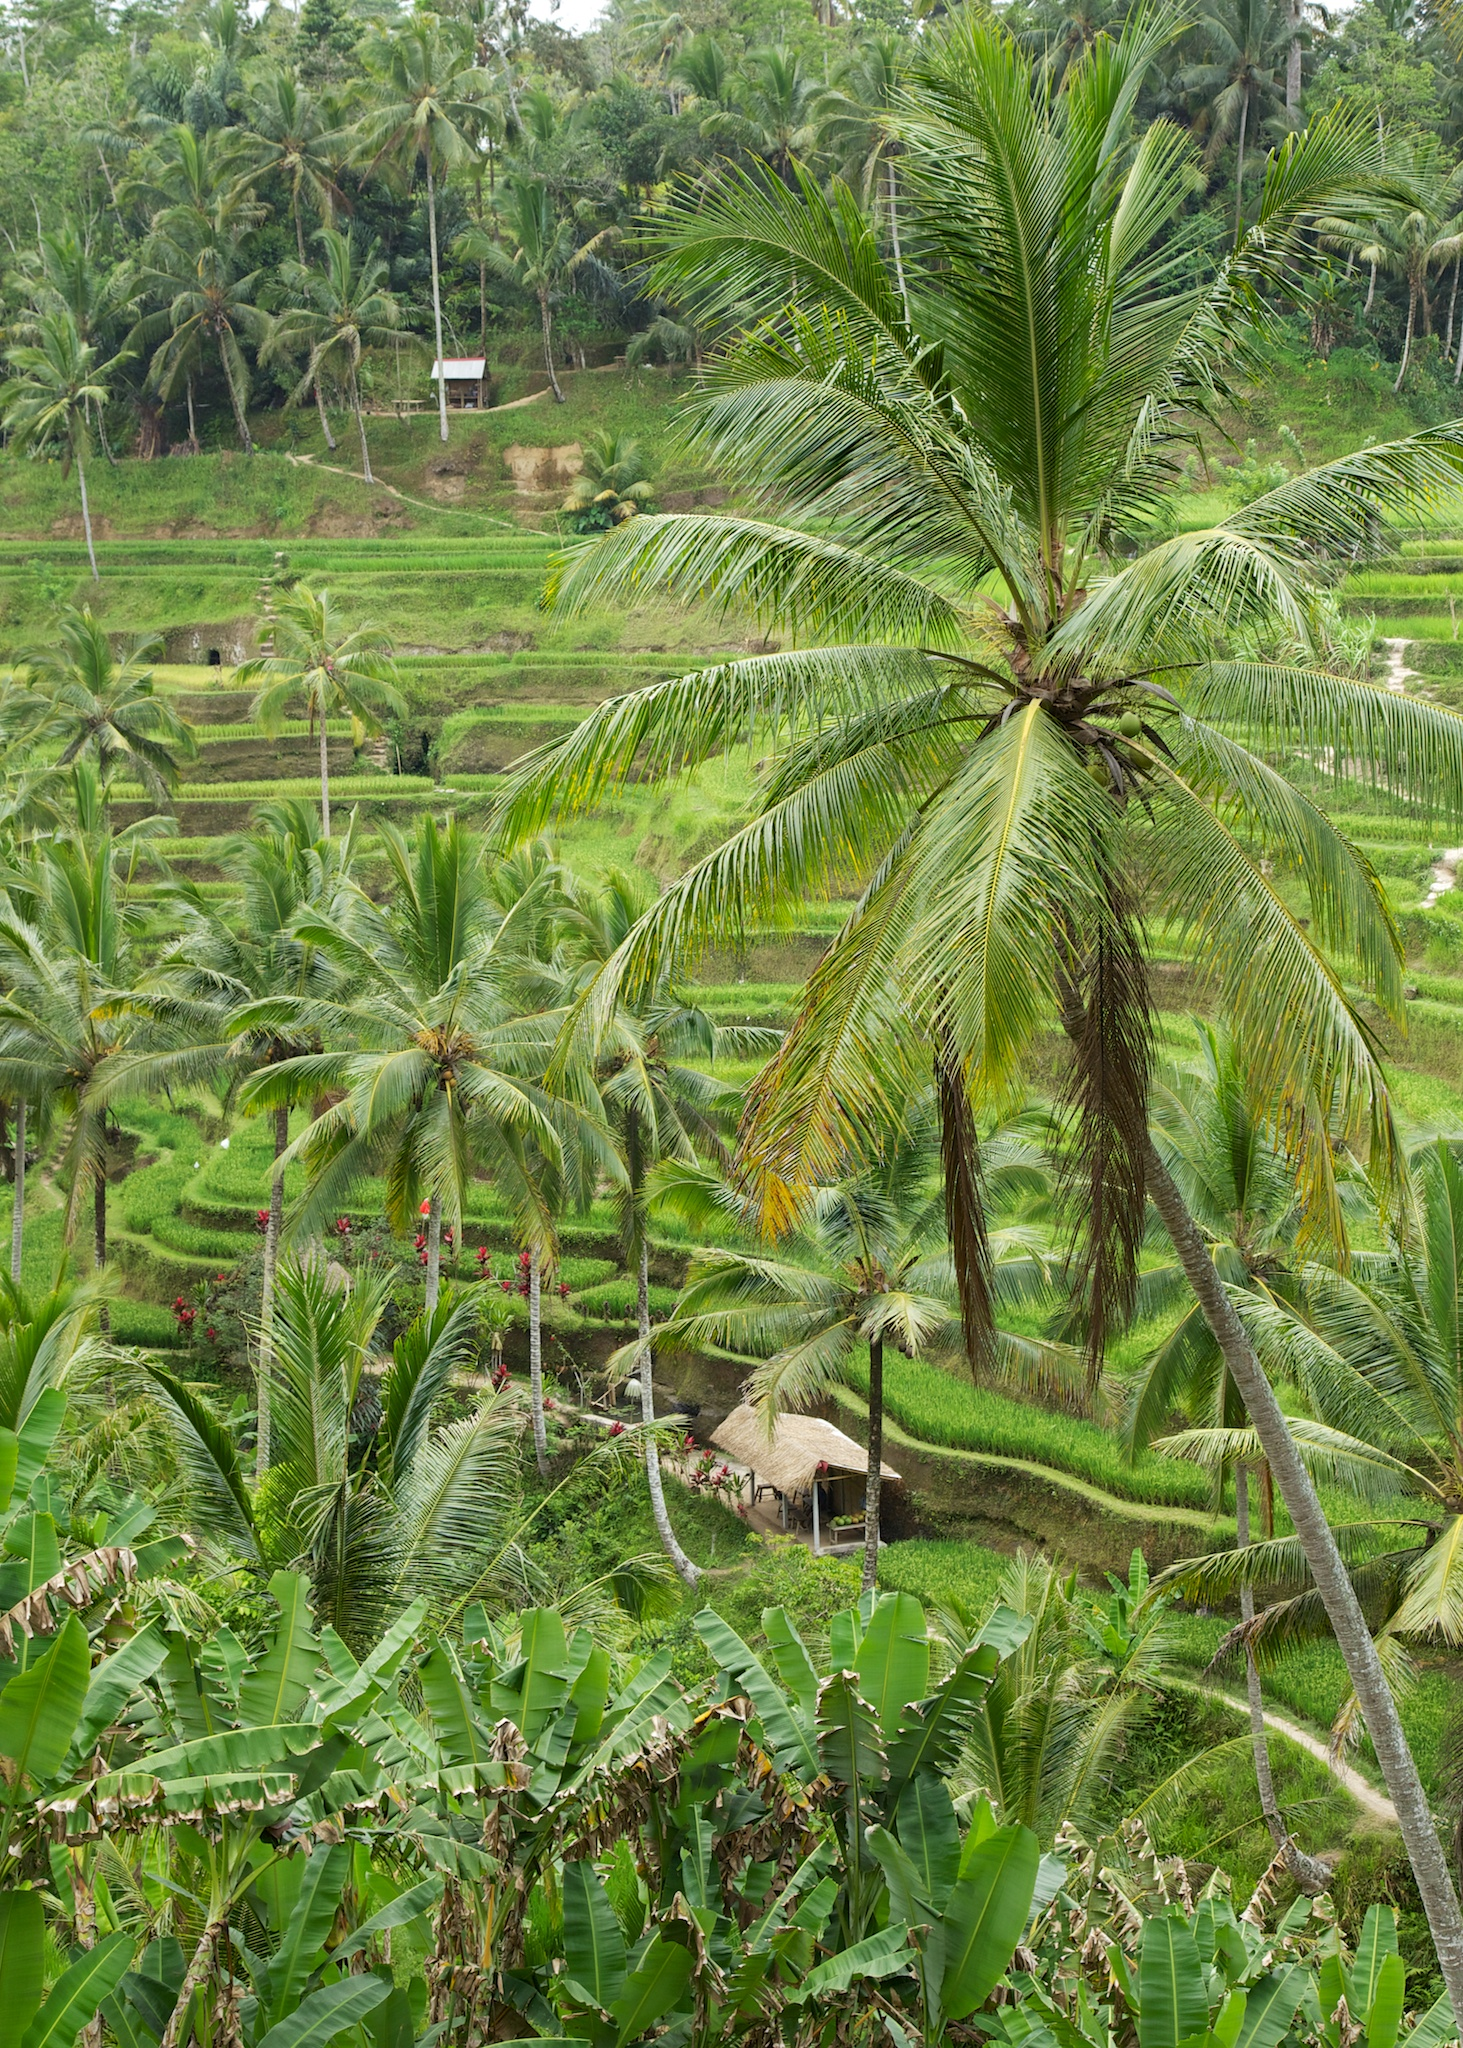 Palm trees and rice paddies in Balli. A totally different world.